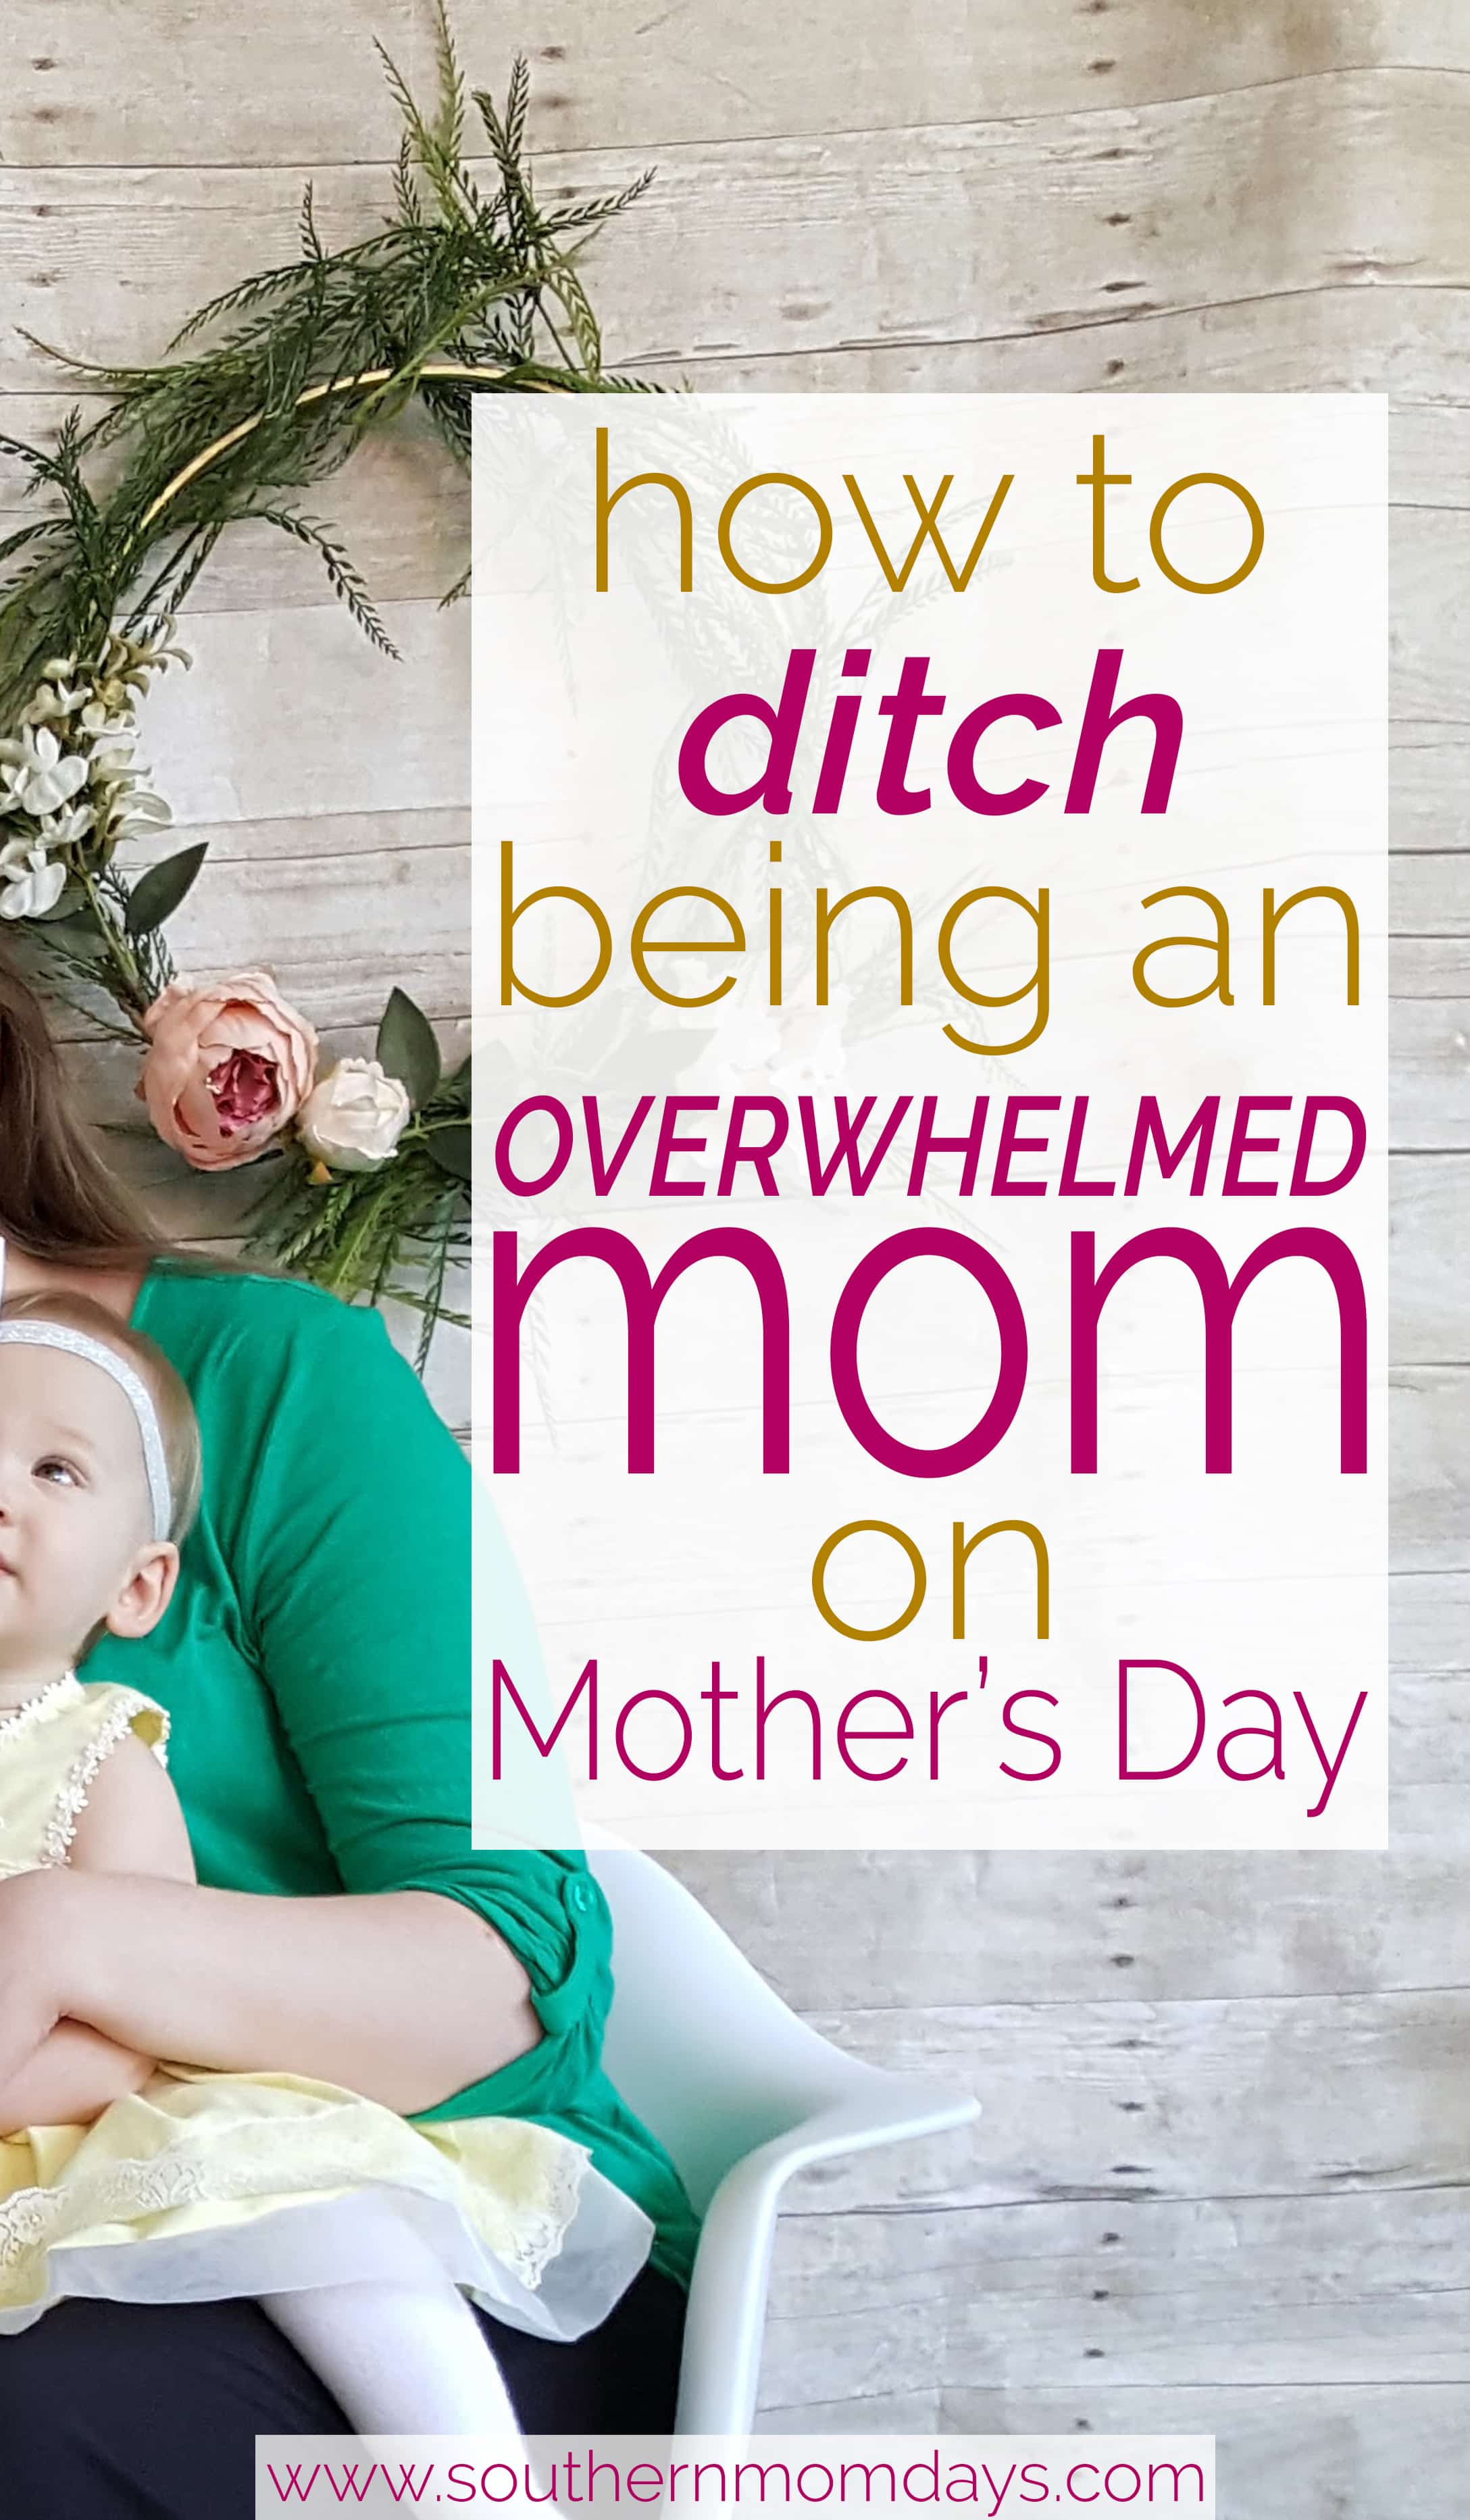 How to Ditch Being an Overwhelmed Mom on Mother's Day, featured on Southern Momdays